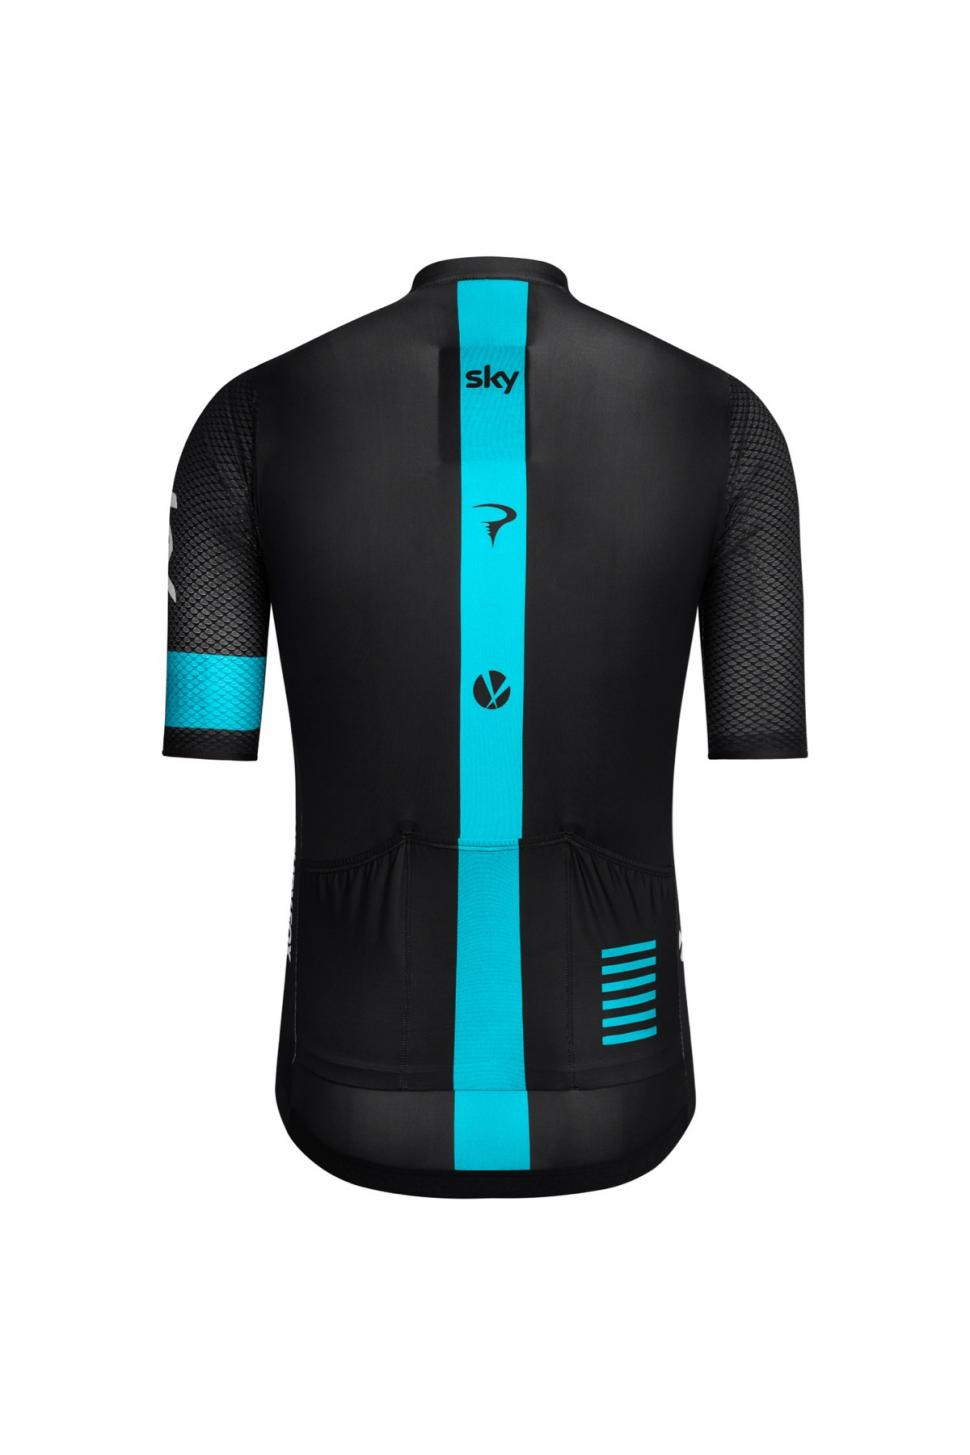 Rapha announces 2016 Team Sky kit  febe5f0f9